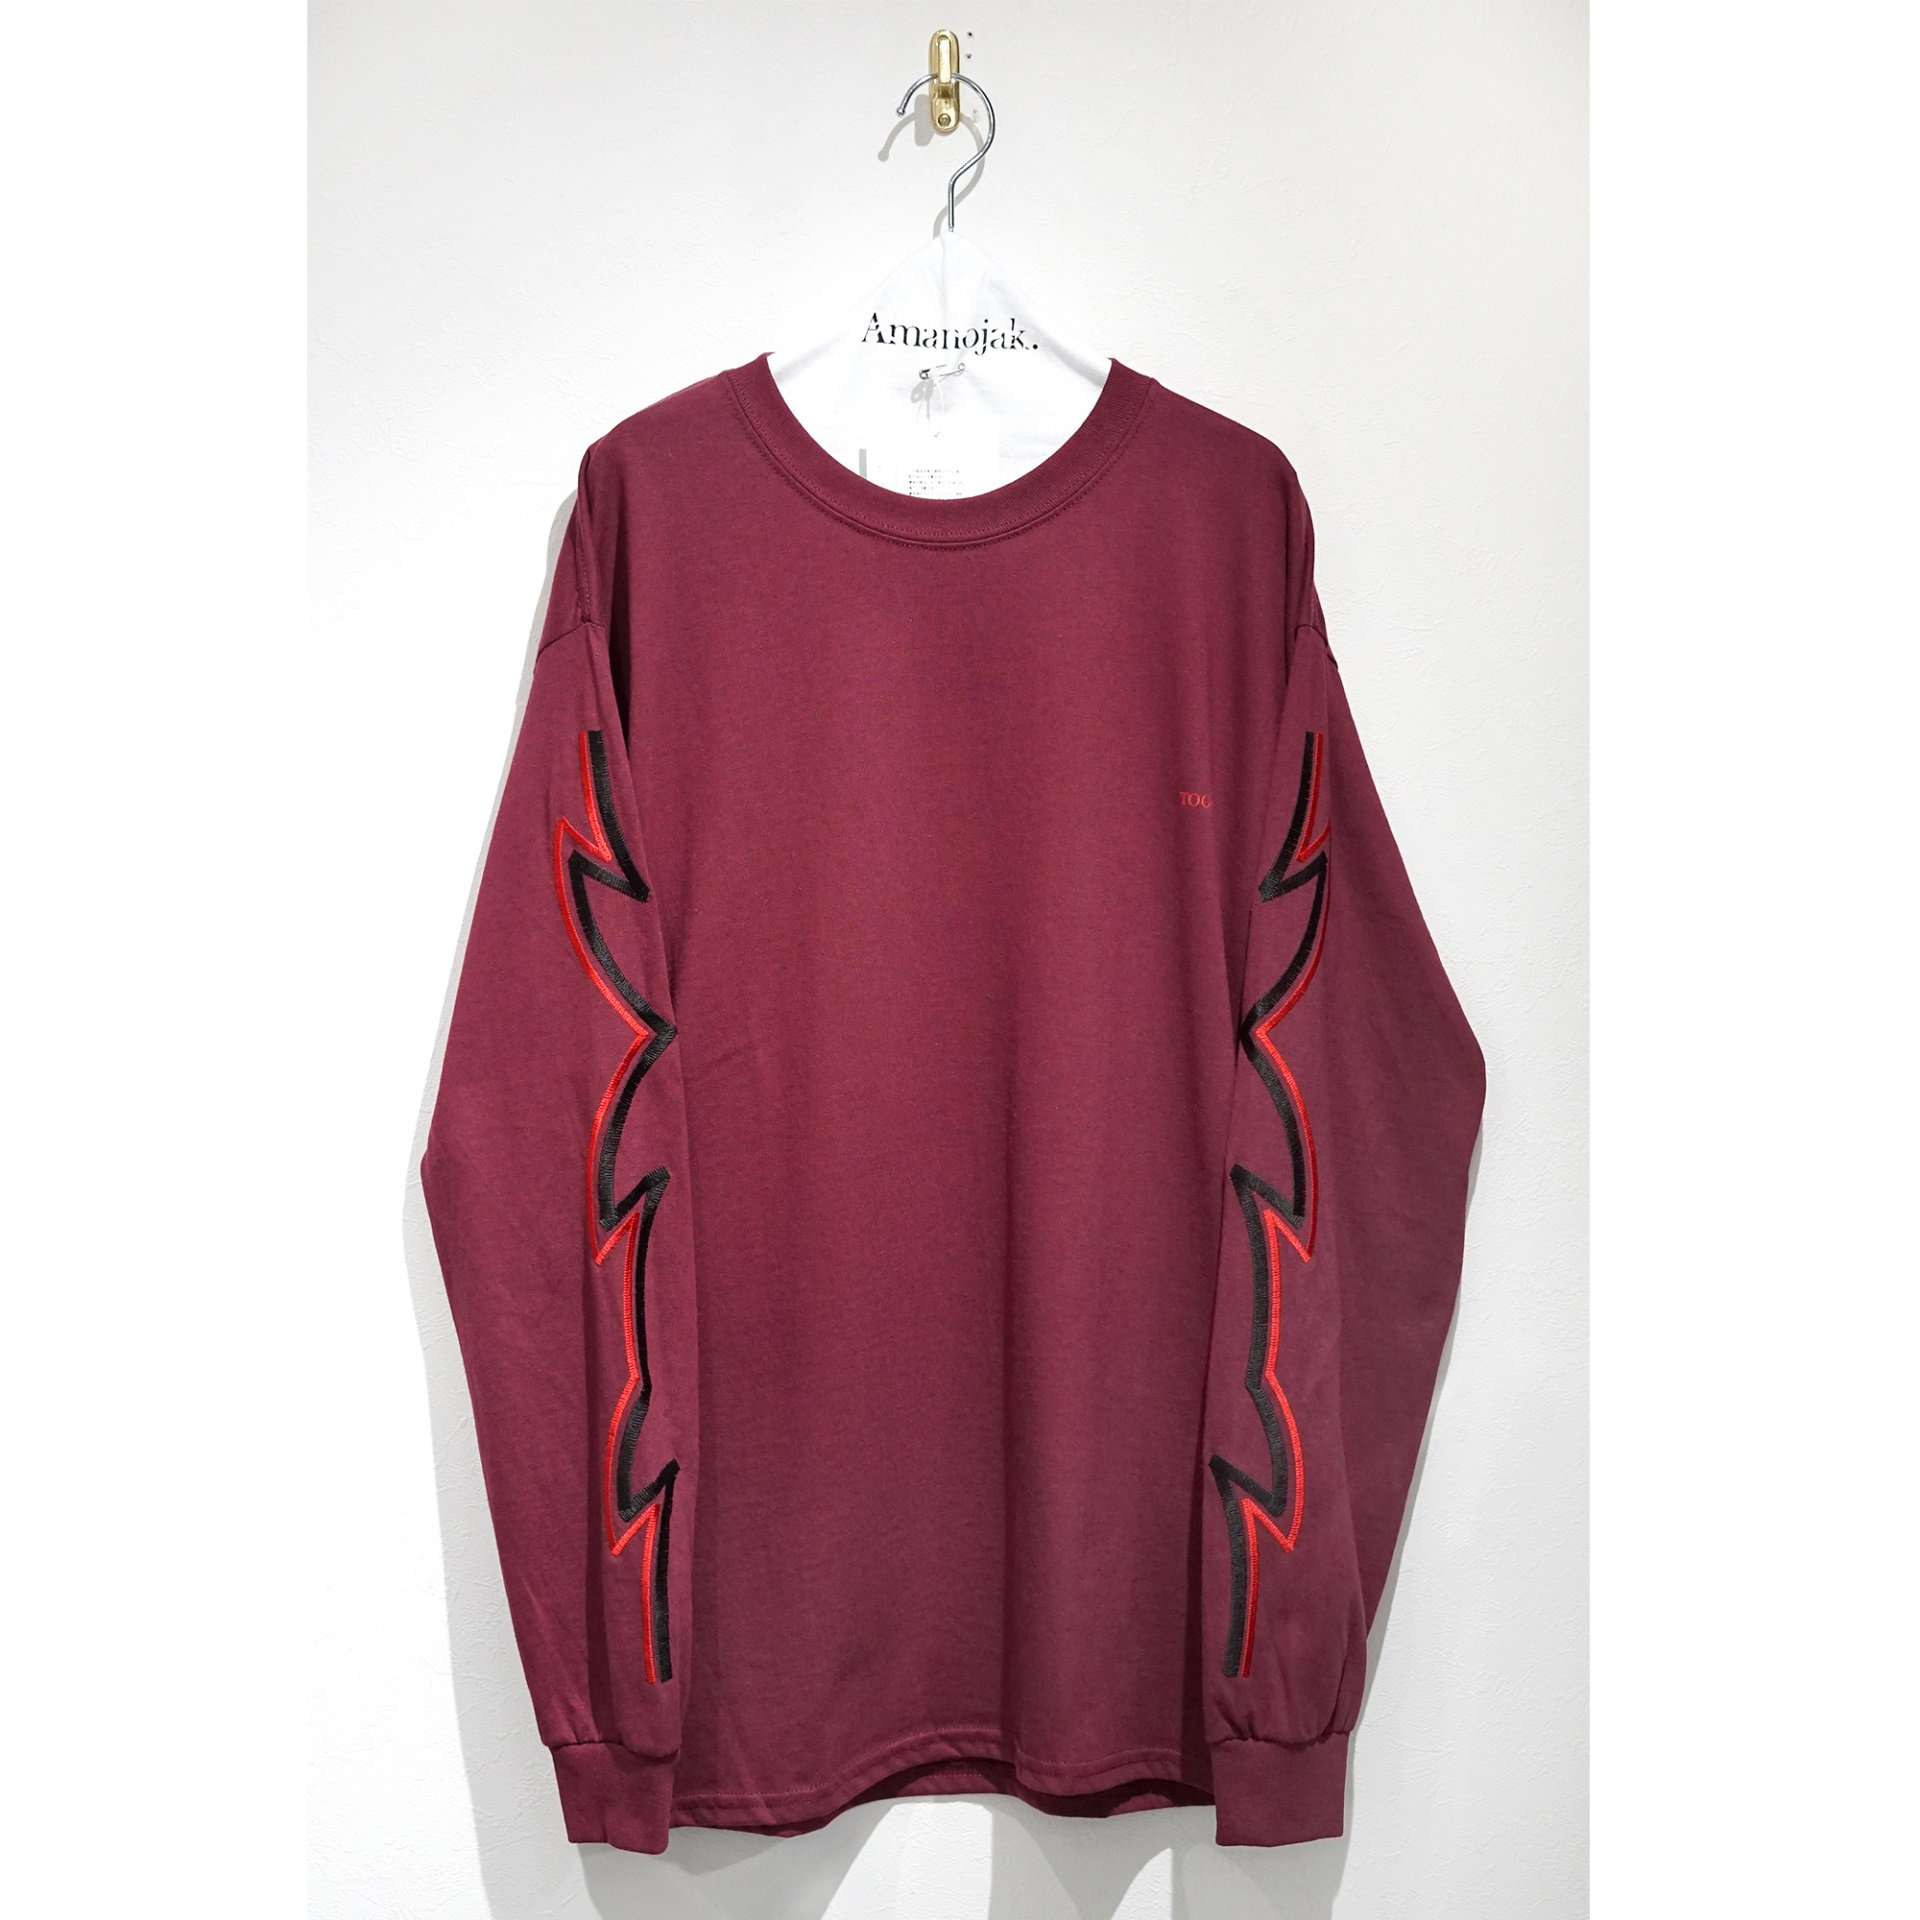 TOGA VIRILLIS-EMBROIDERY L/S SHIRT DARK RED